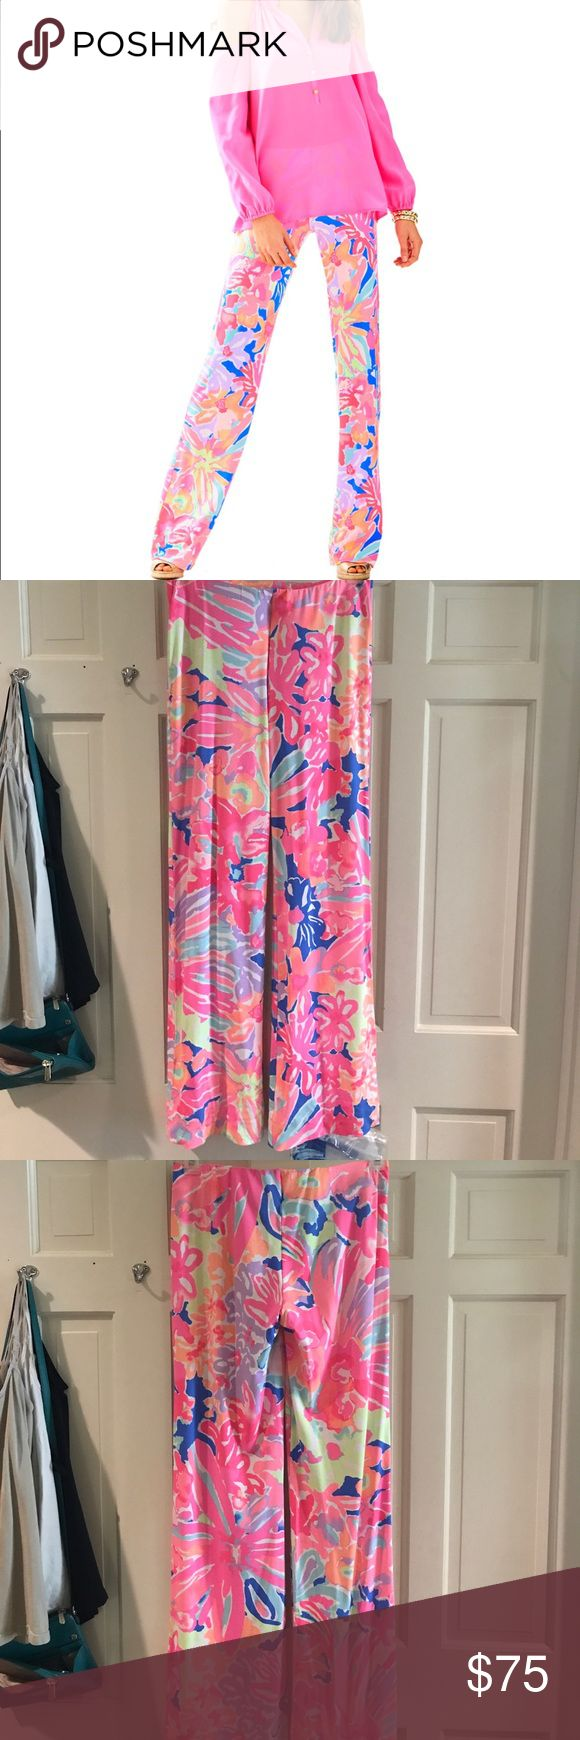 Georgia May Palazzo Pant in Playa Hermosa size S New! Stretch cotton palazzo pant in pull-on style by Lilly Pulitzer. Worn and washed once Lilly Pulitzer Pants